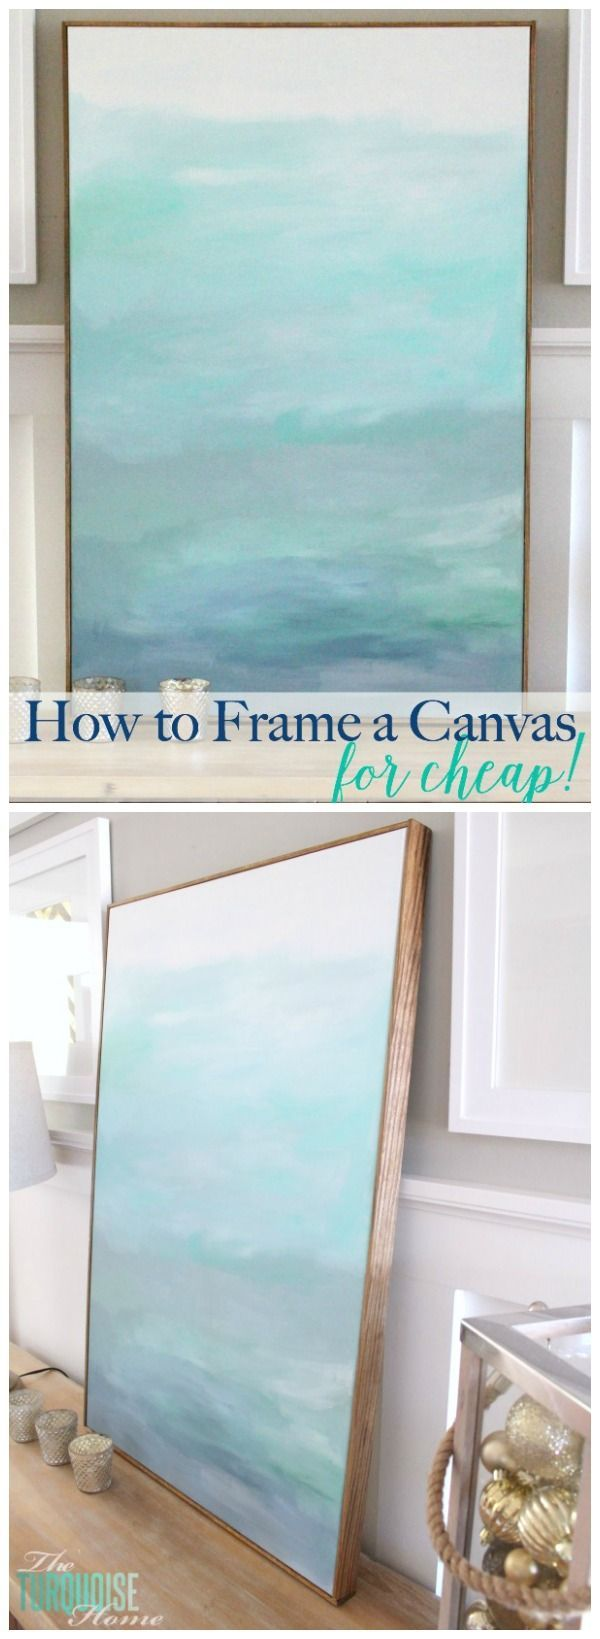 how to frame a canvas for cheap interior decor galleries and